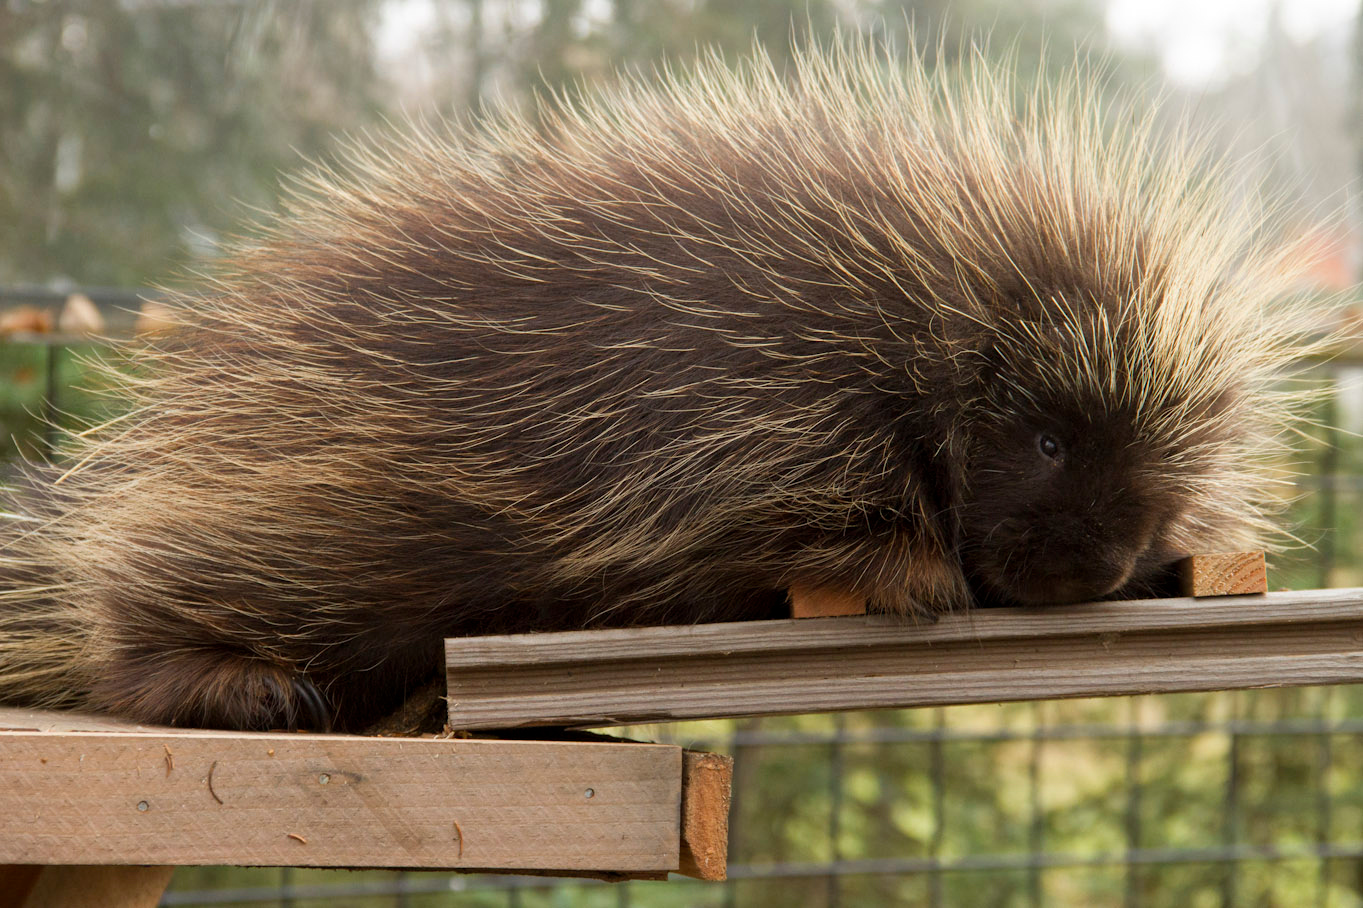 Porcupine and flying squirrel.